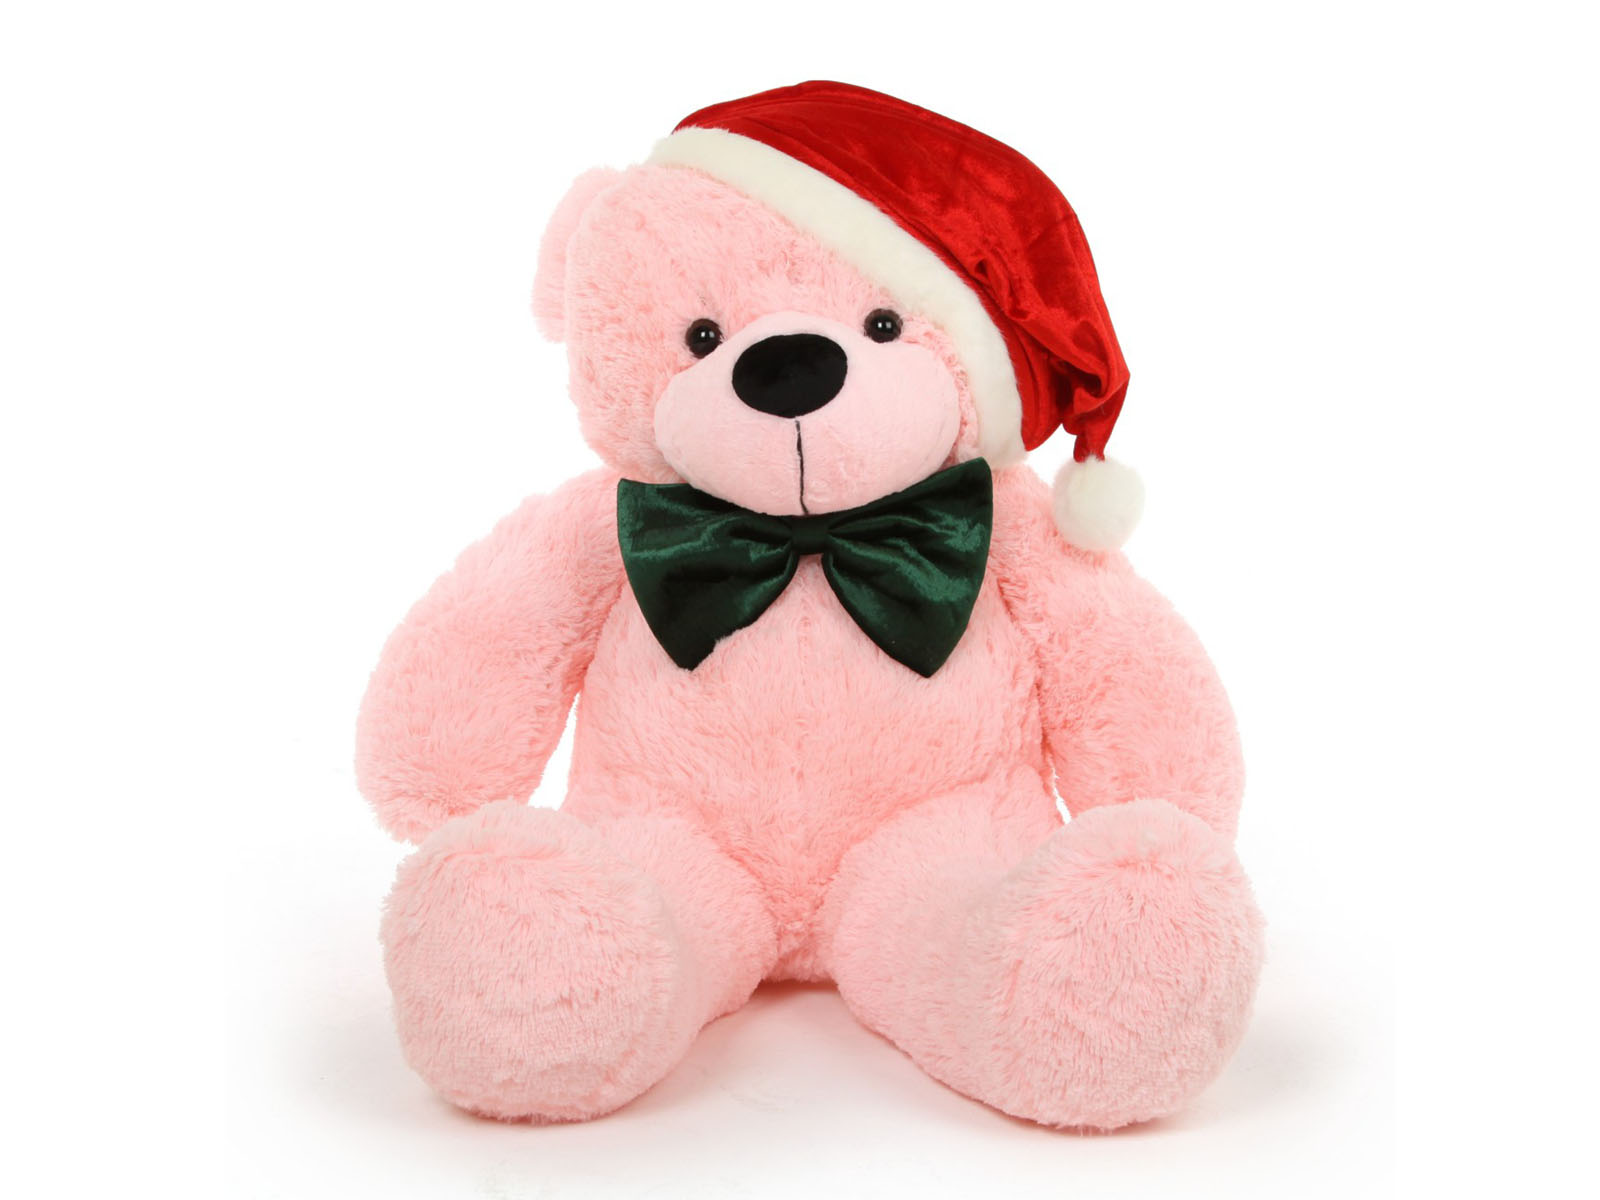 Christmas Teddy Bear Wallpaper: Cute Teddy Bear Images. Have You Seen Our Teddy Bears